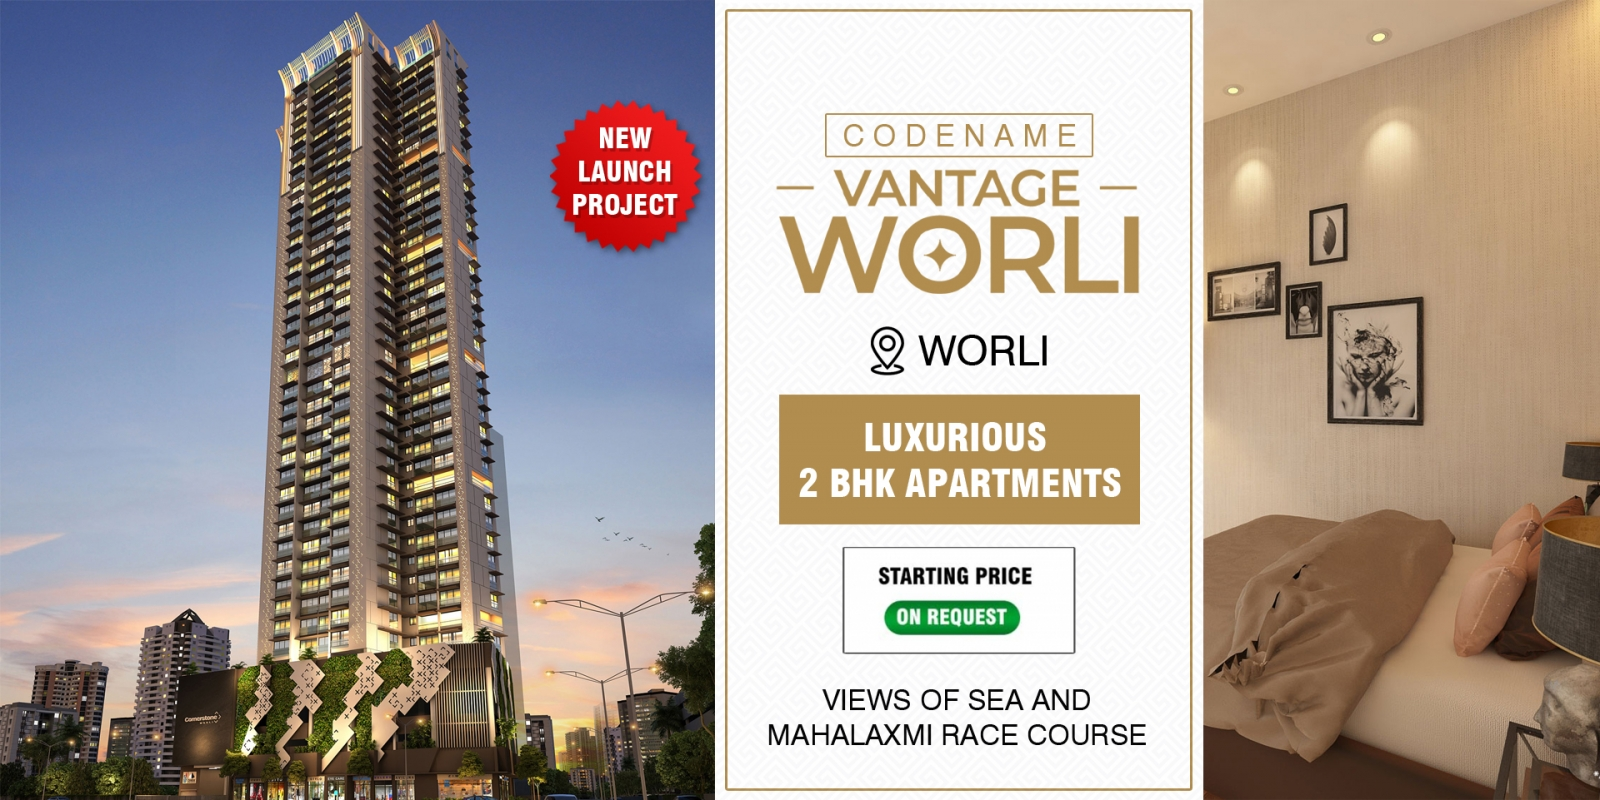 codename Vantage worli